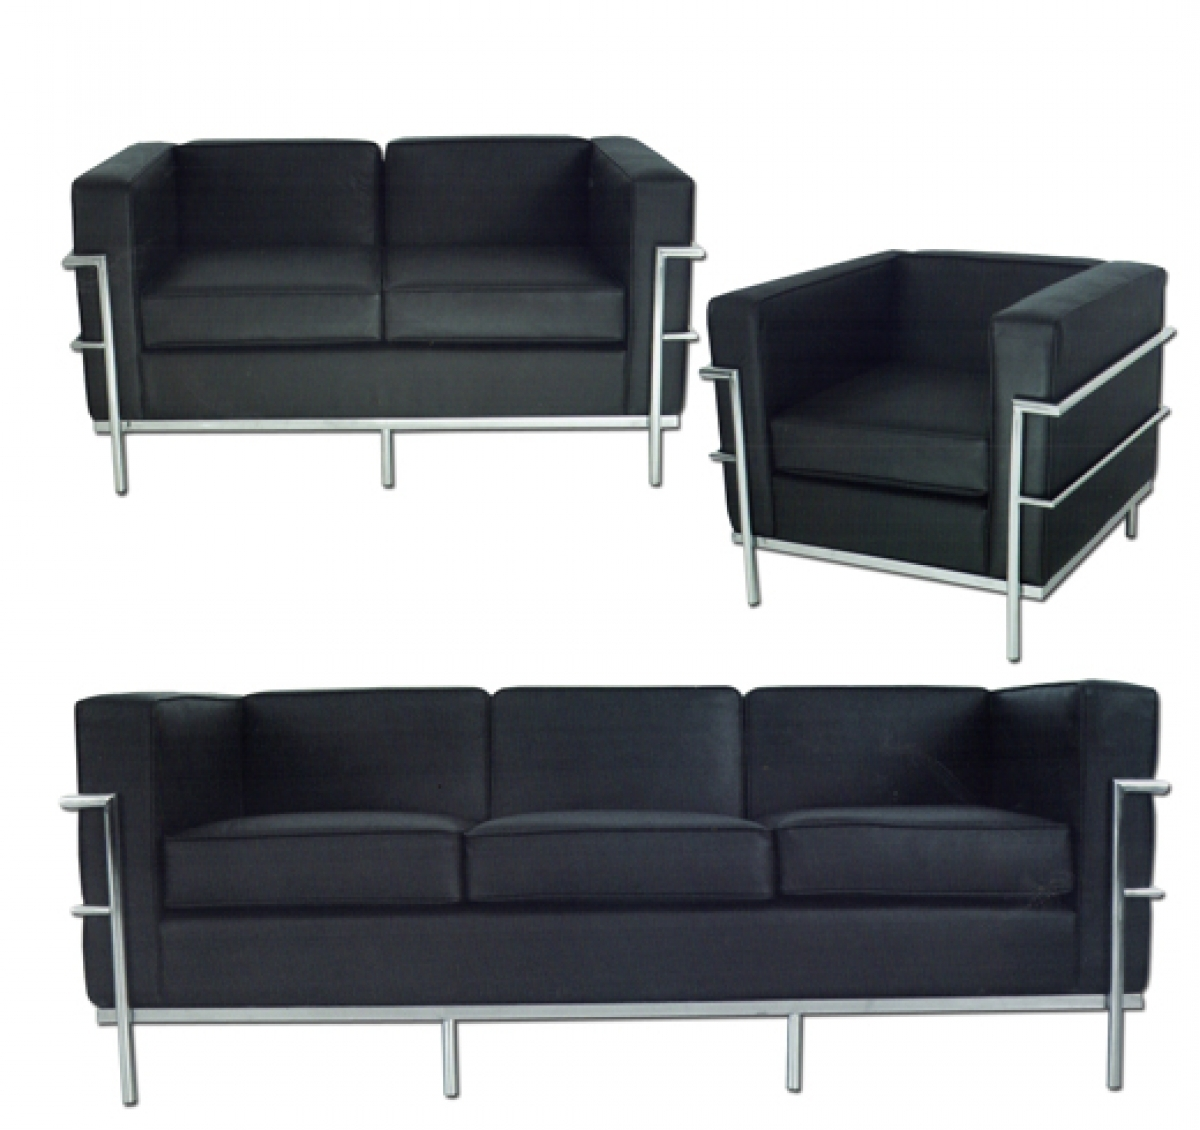 office sofa sets. Exellent Sets Home U203a VSS1101 Office Sofa Set 1487418398_1949818_z With Sets E